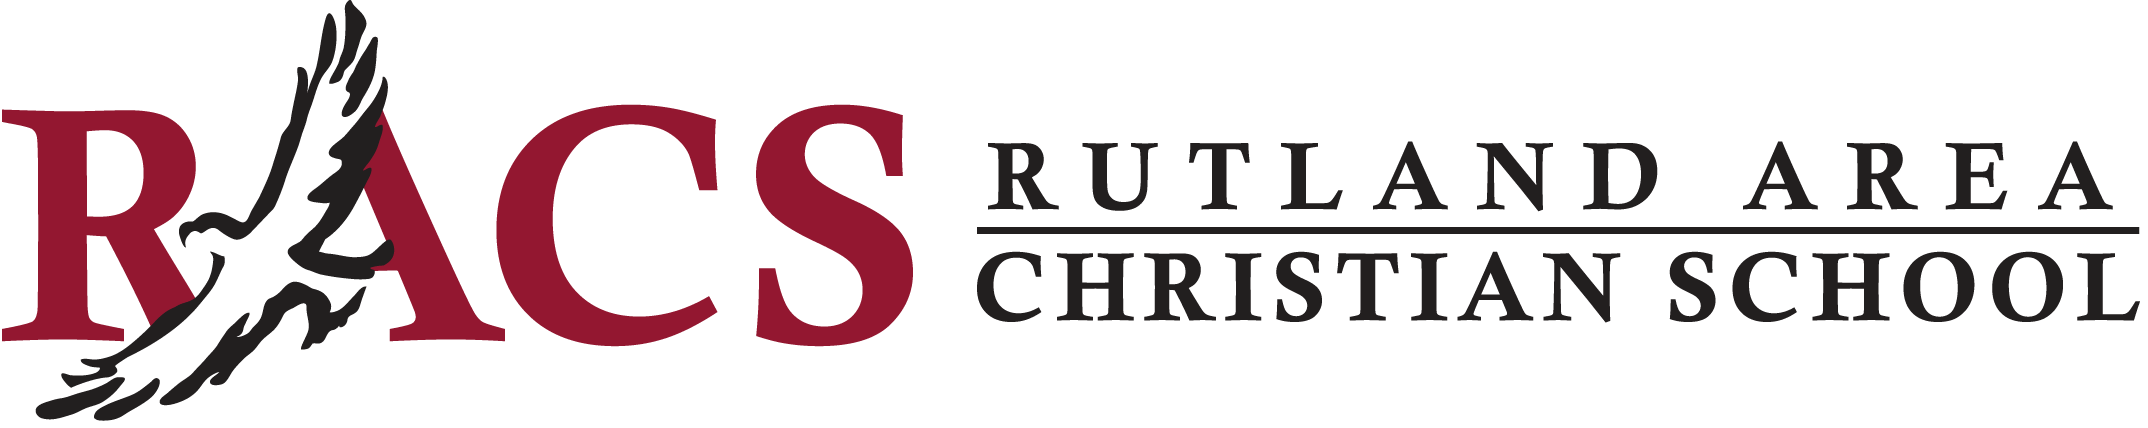 Rutland Area Christian School